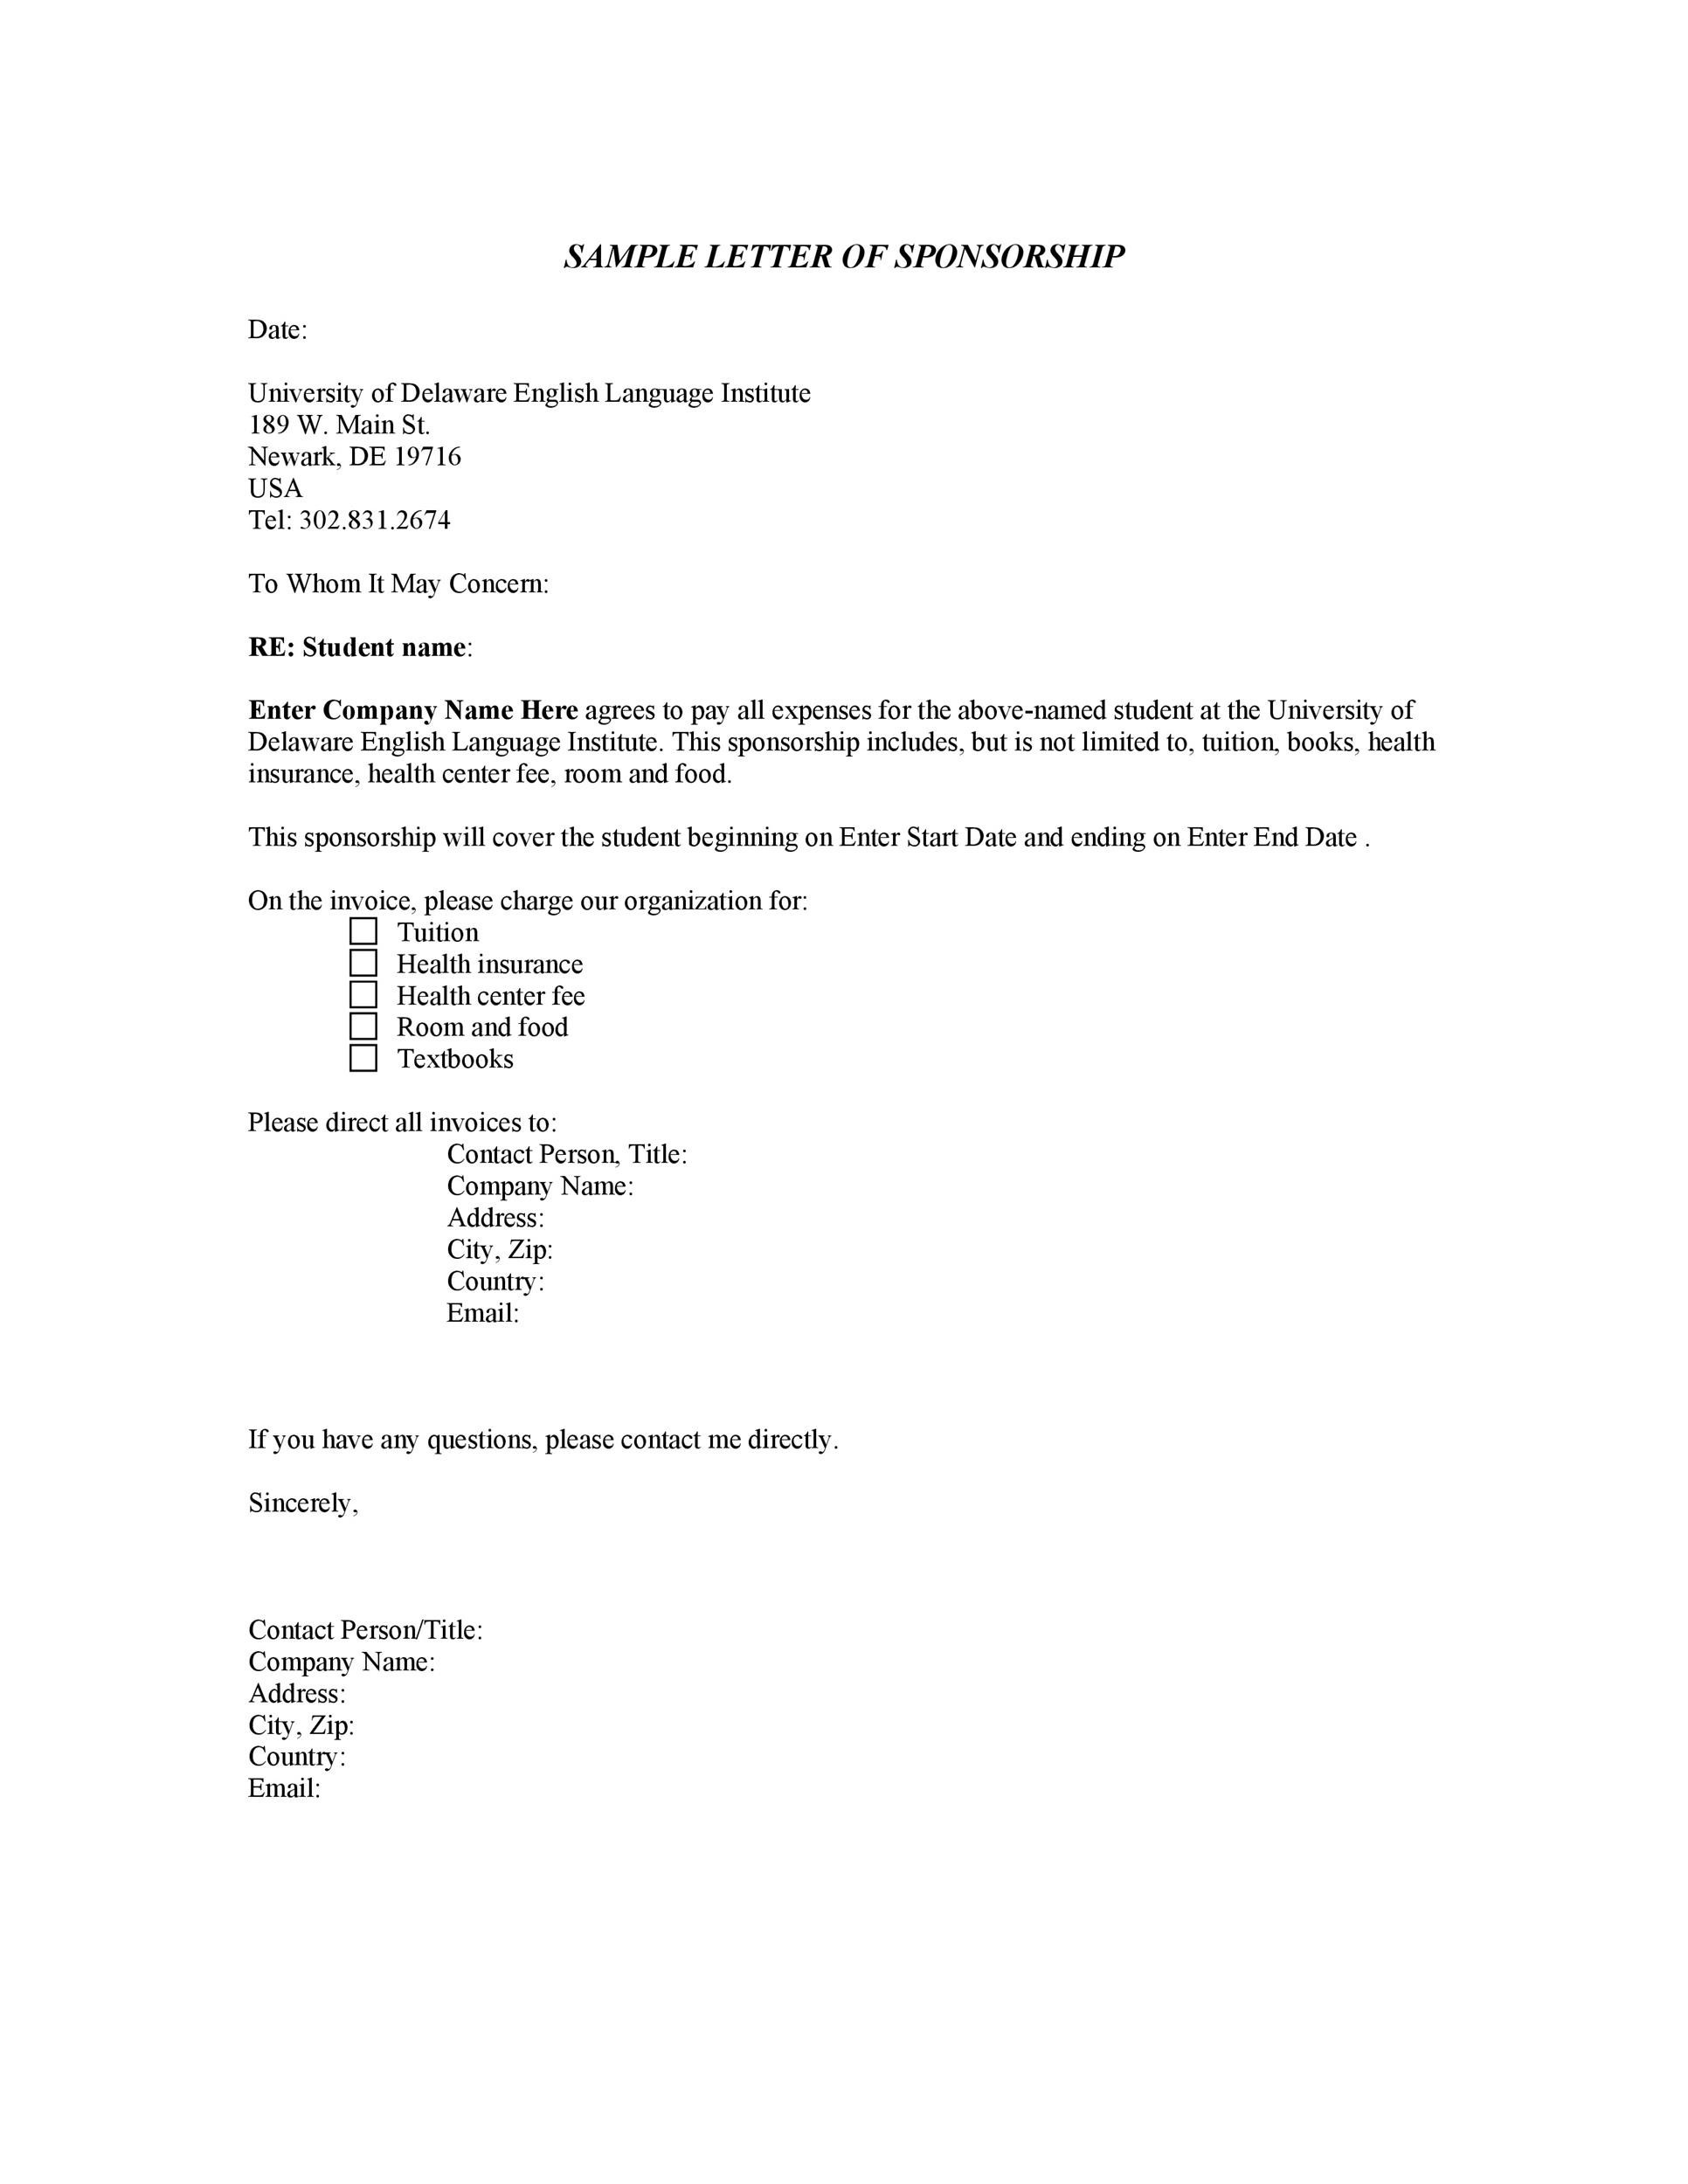 40 sponsorship letter sponsorship proposal templates